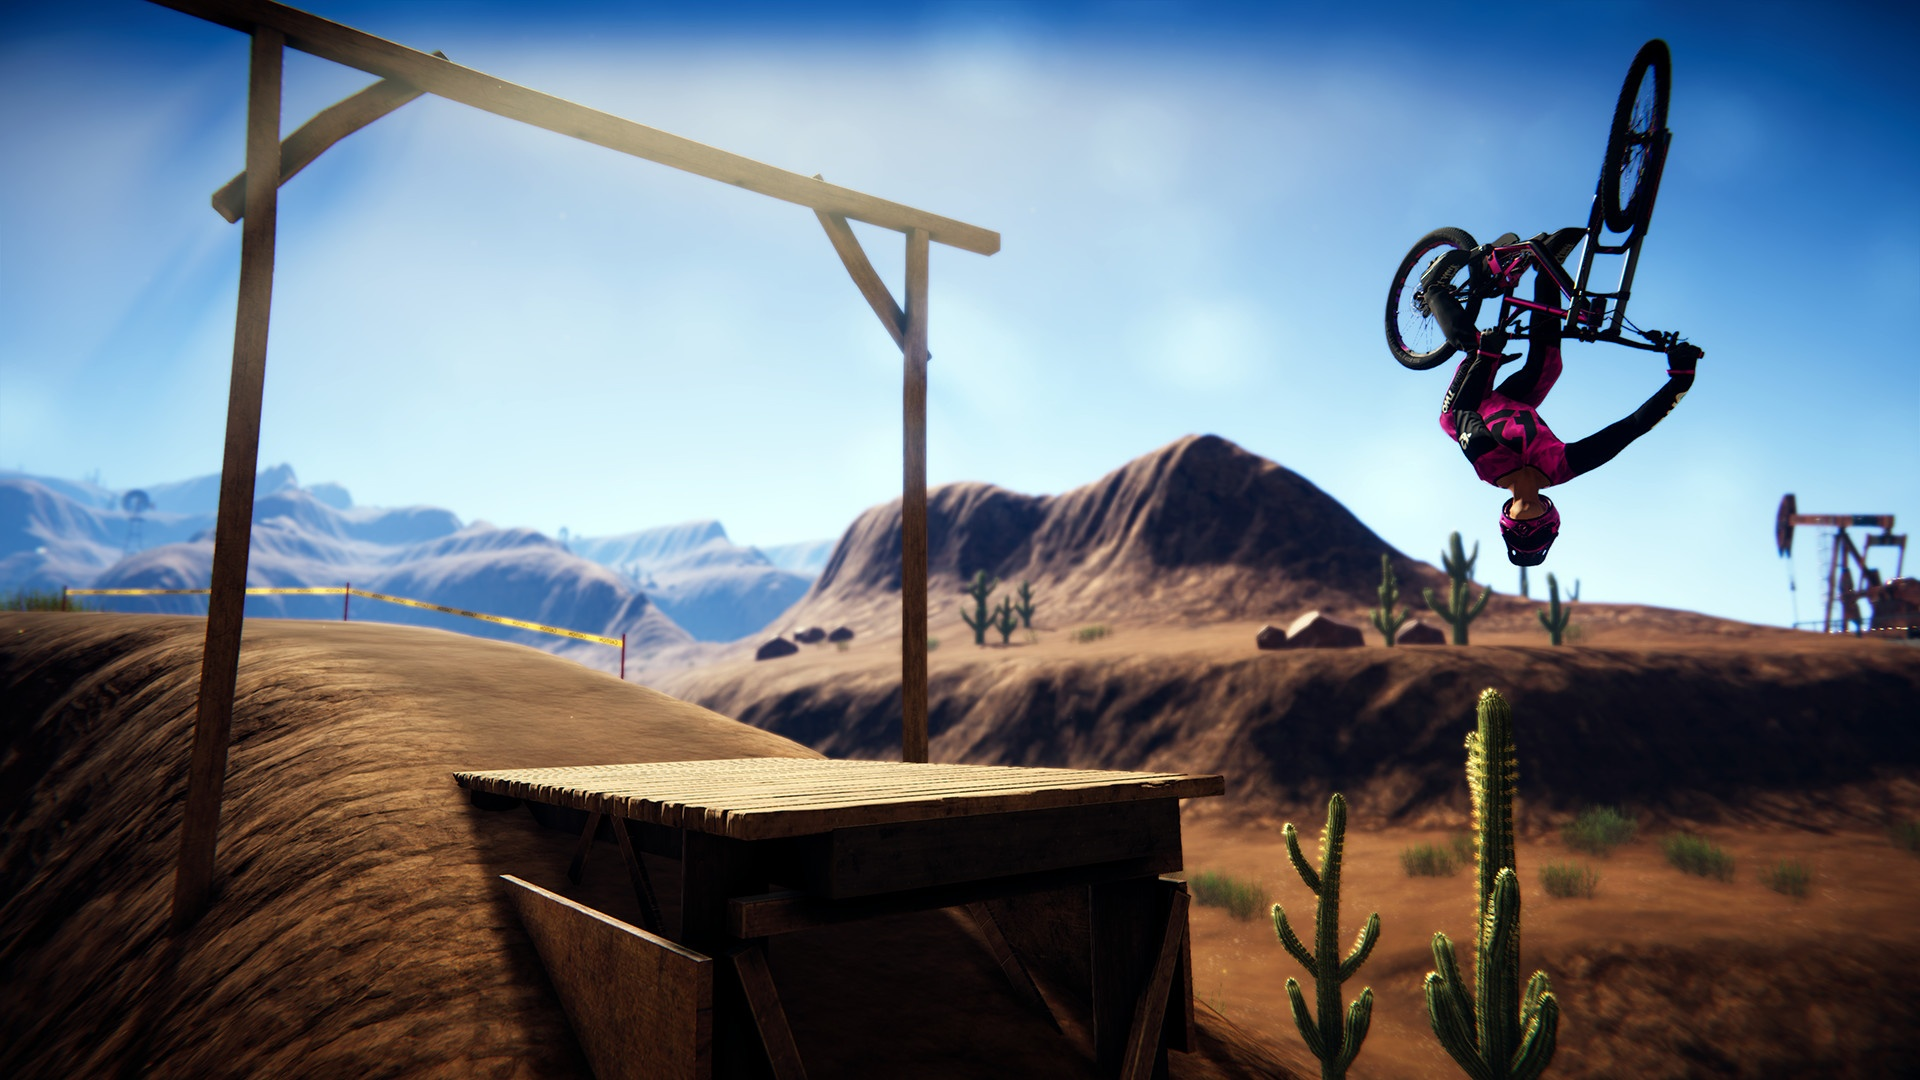 Action, Action Henk, arcade, Bikes, Biking, cycling, Descenders, Descenders Preview, Driving, Early Access, No More Robots, PC, Preview, Racing, RageSquid, Sports